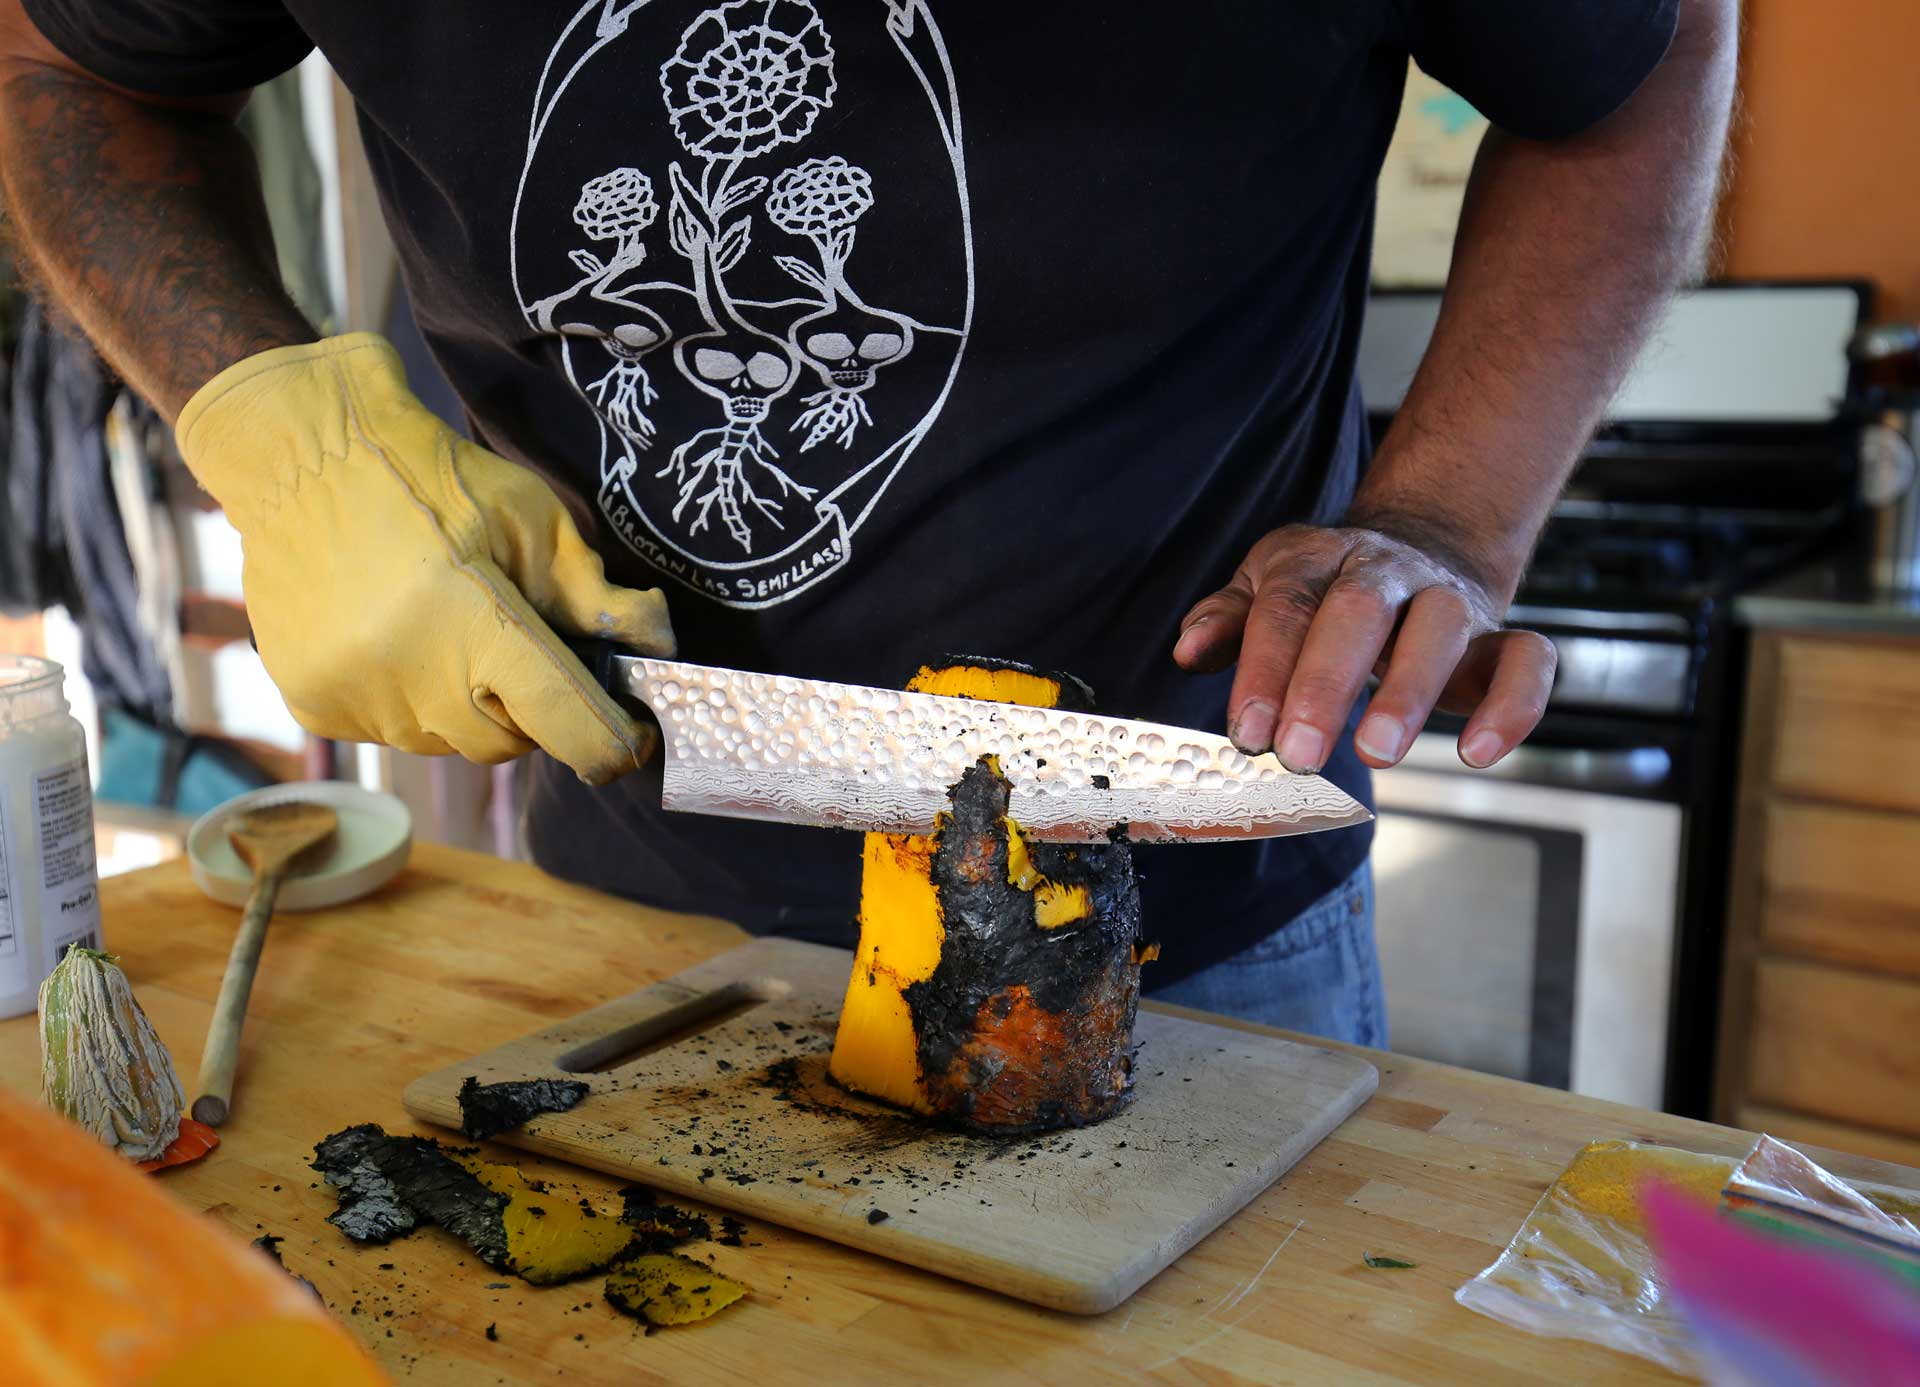 Once the squash is ready, the charred skin is removed.